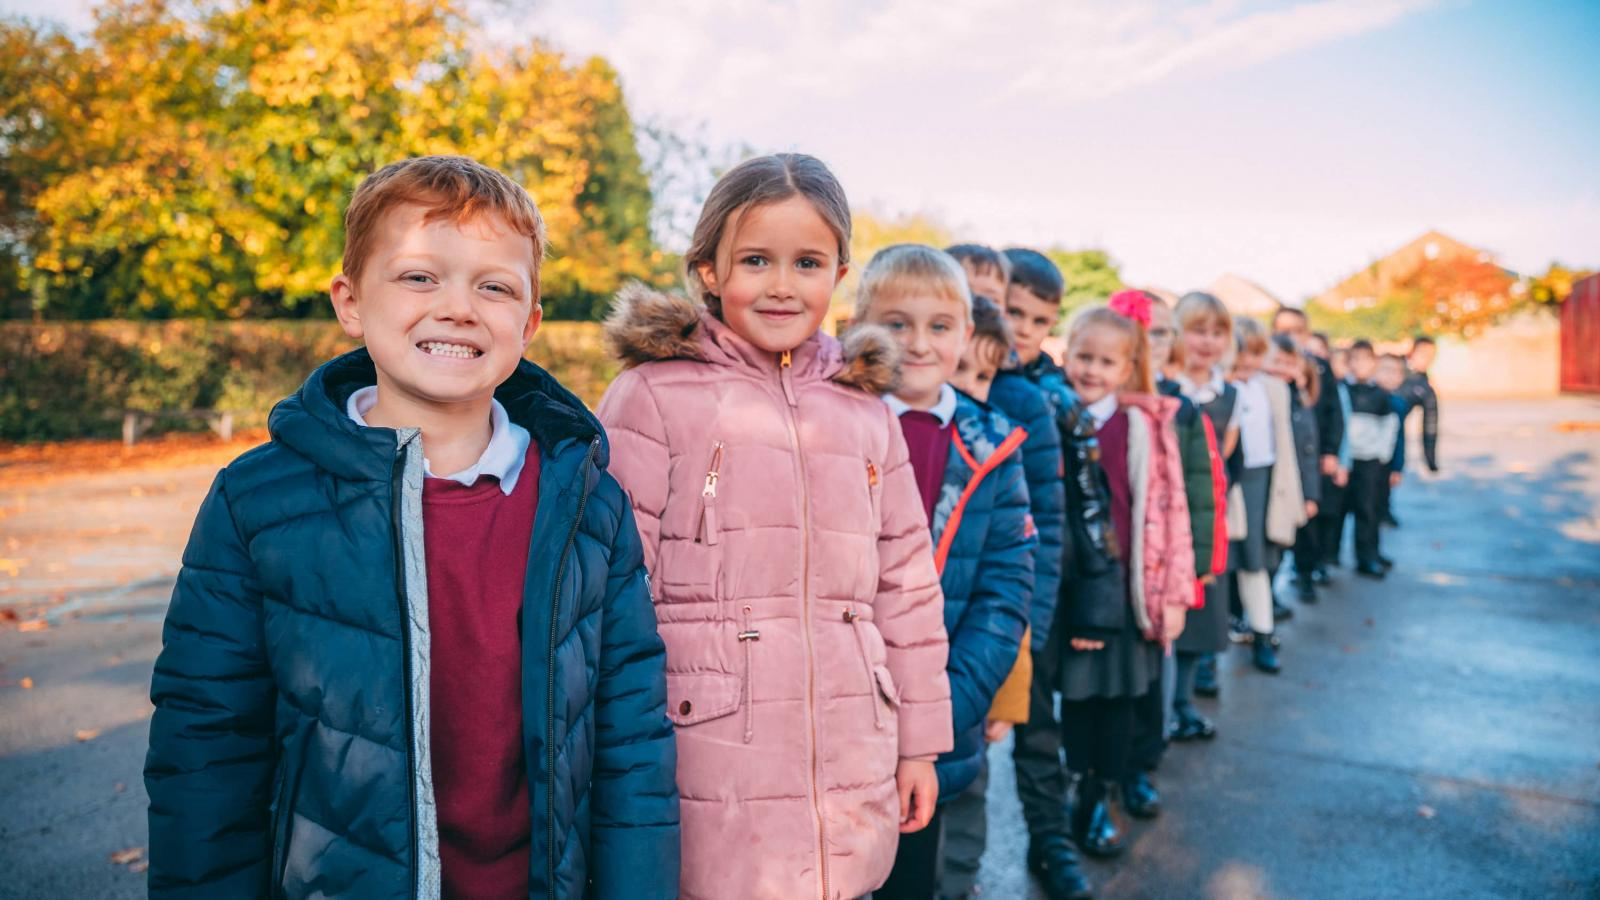 Pupils line up in the playground